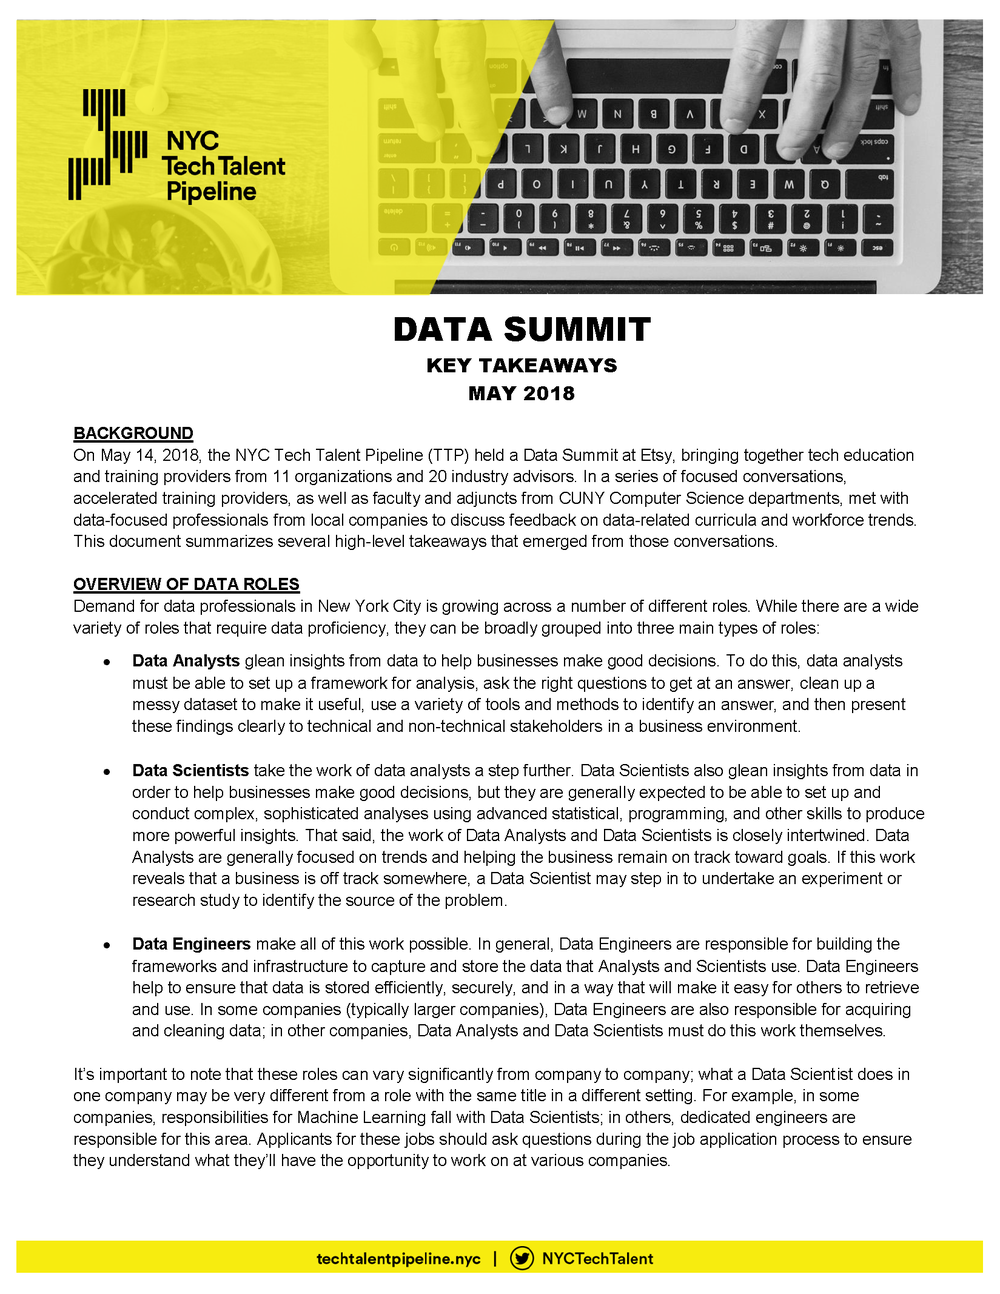 - This document summarizes several high-level takeaways that emerged from the May 2018 Data Summit.